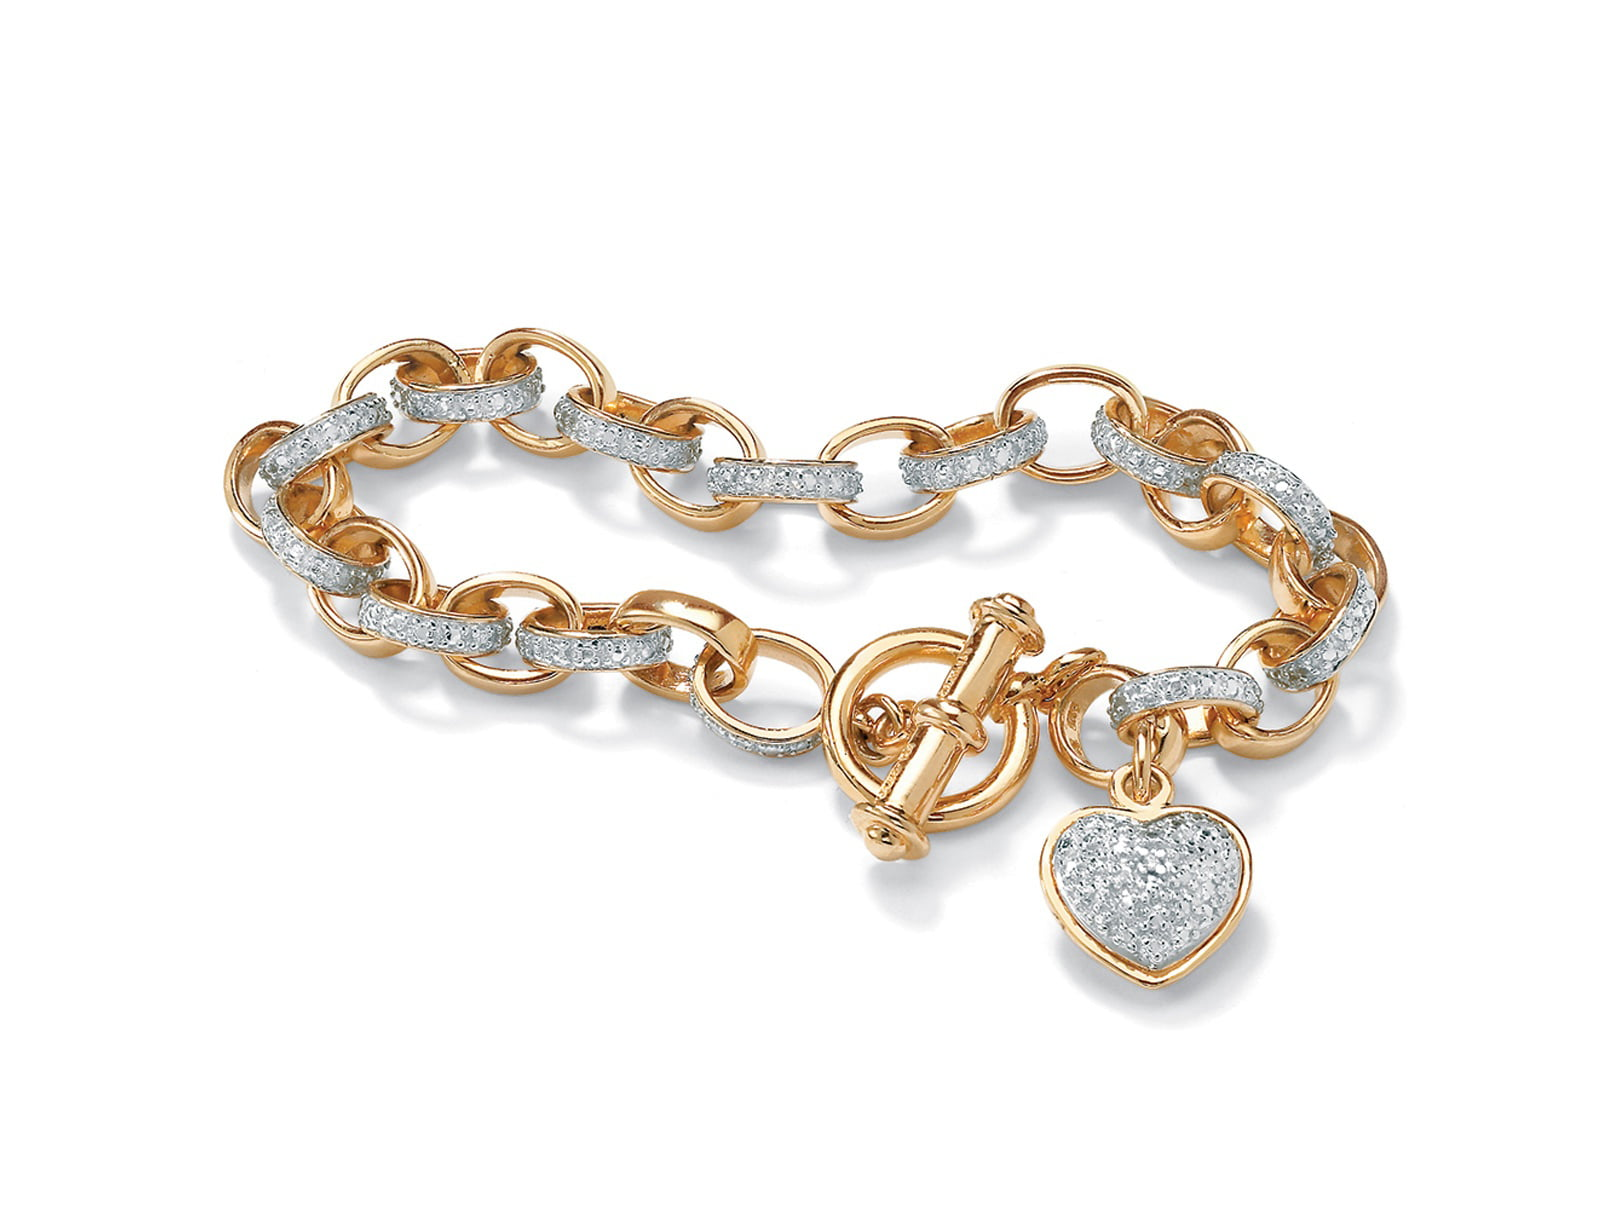 """Diamond Accent Heart Charm Bracelet in 18k Gold over Sterling Silver 7.25"""" by PalmBeach Jewelry"""